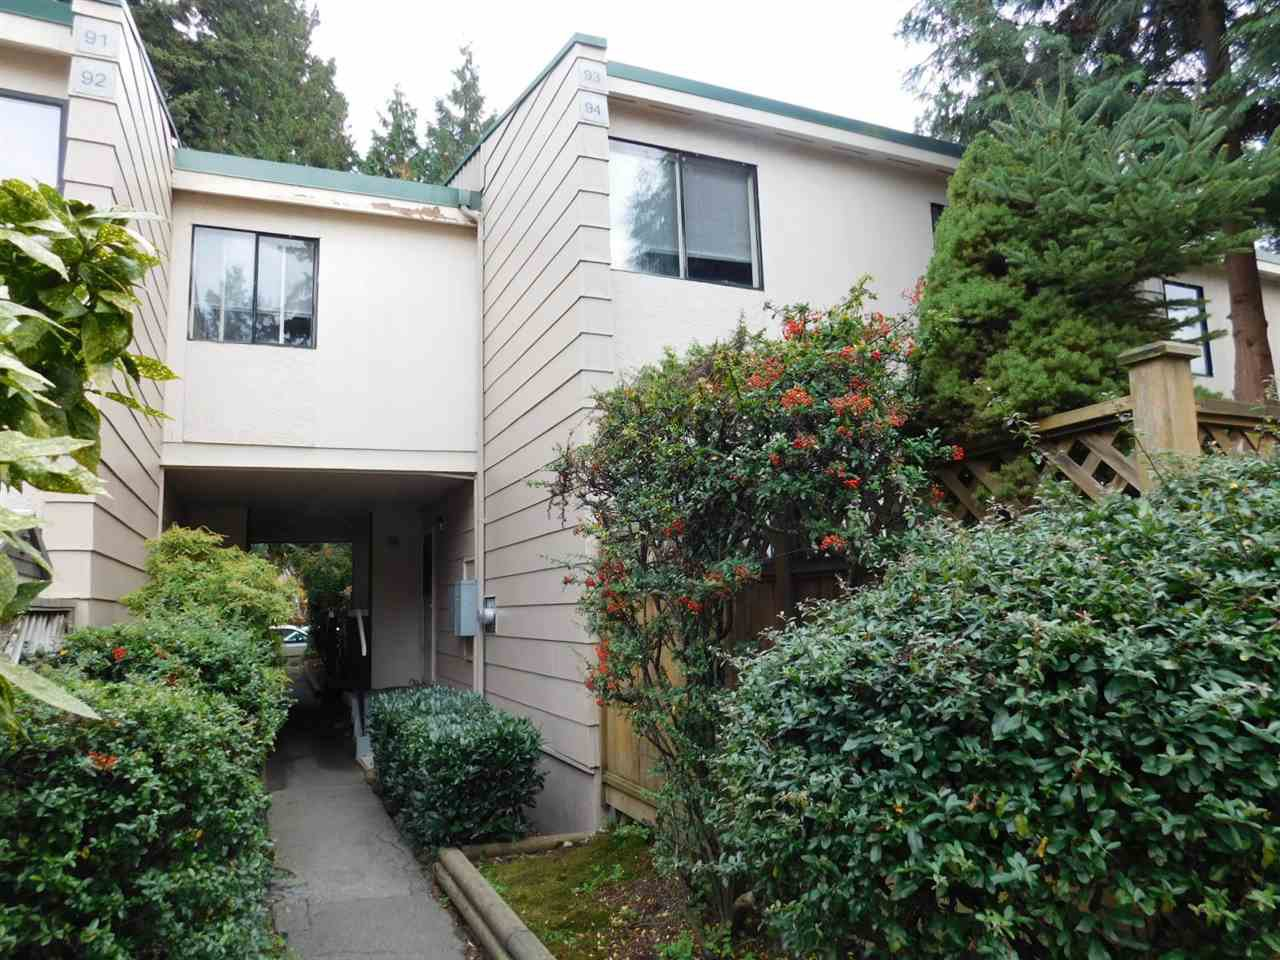 """Main Photo: 94 10505 153 Street in Surrey: Guildford Townhouse for sale in """"Guildford Mews"""" (North Surrey)  : MLS®# R2317019"""